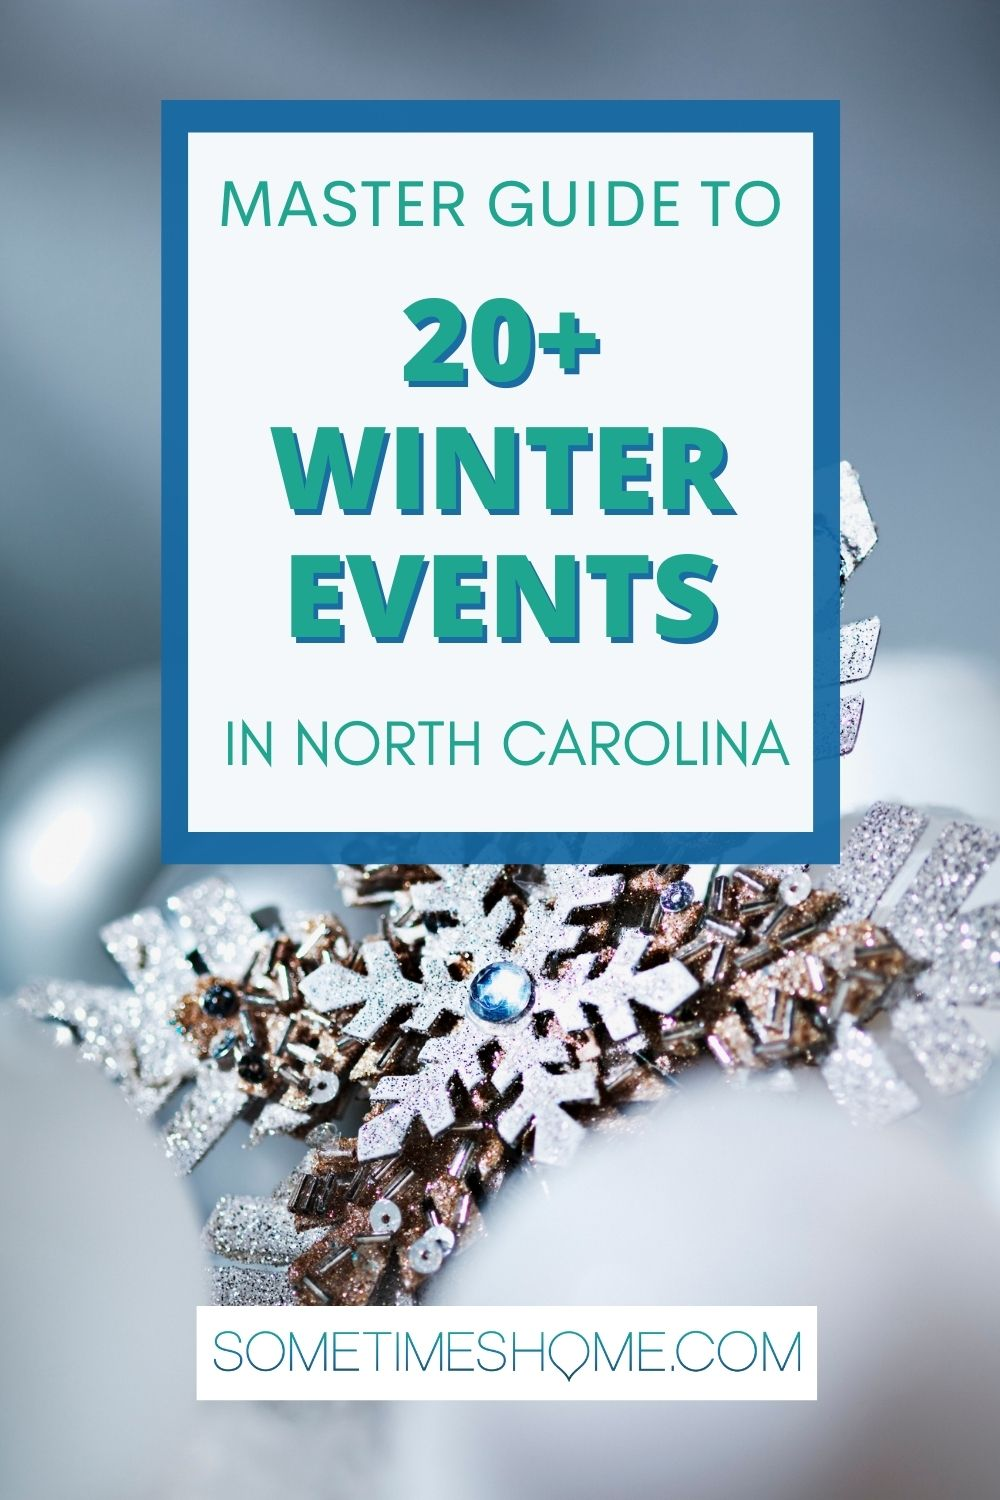 Pinterest image for Master Guide to 20+ Winter Events in North Carolina.